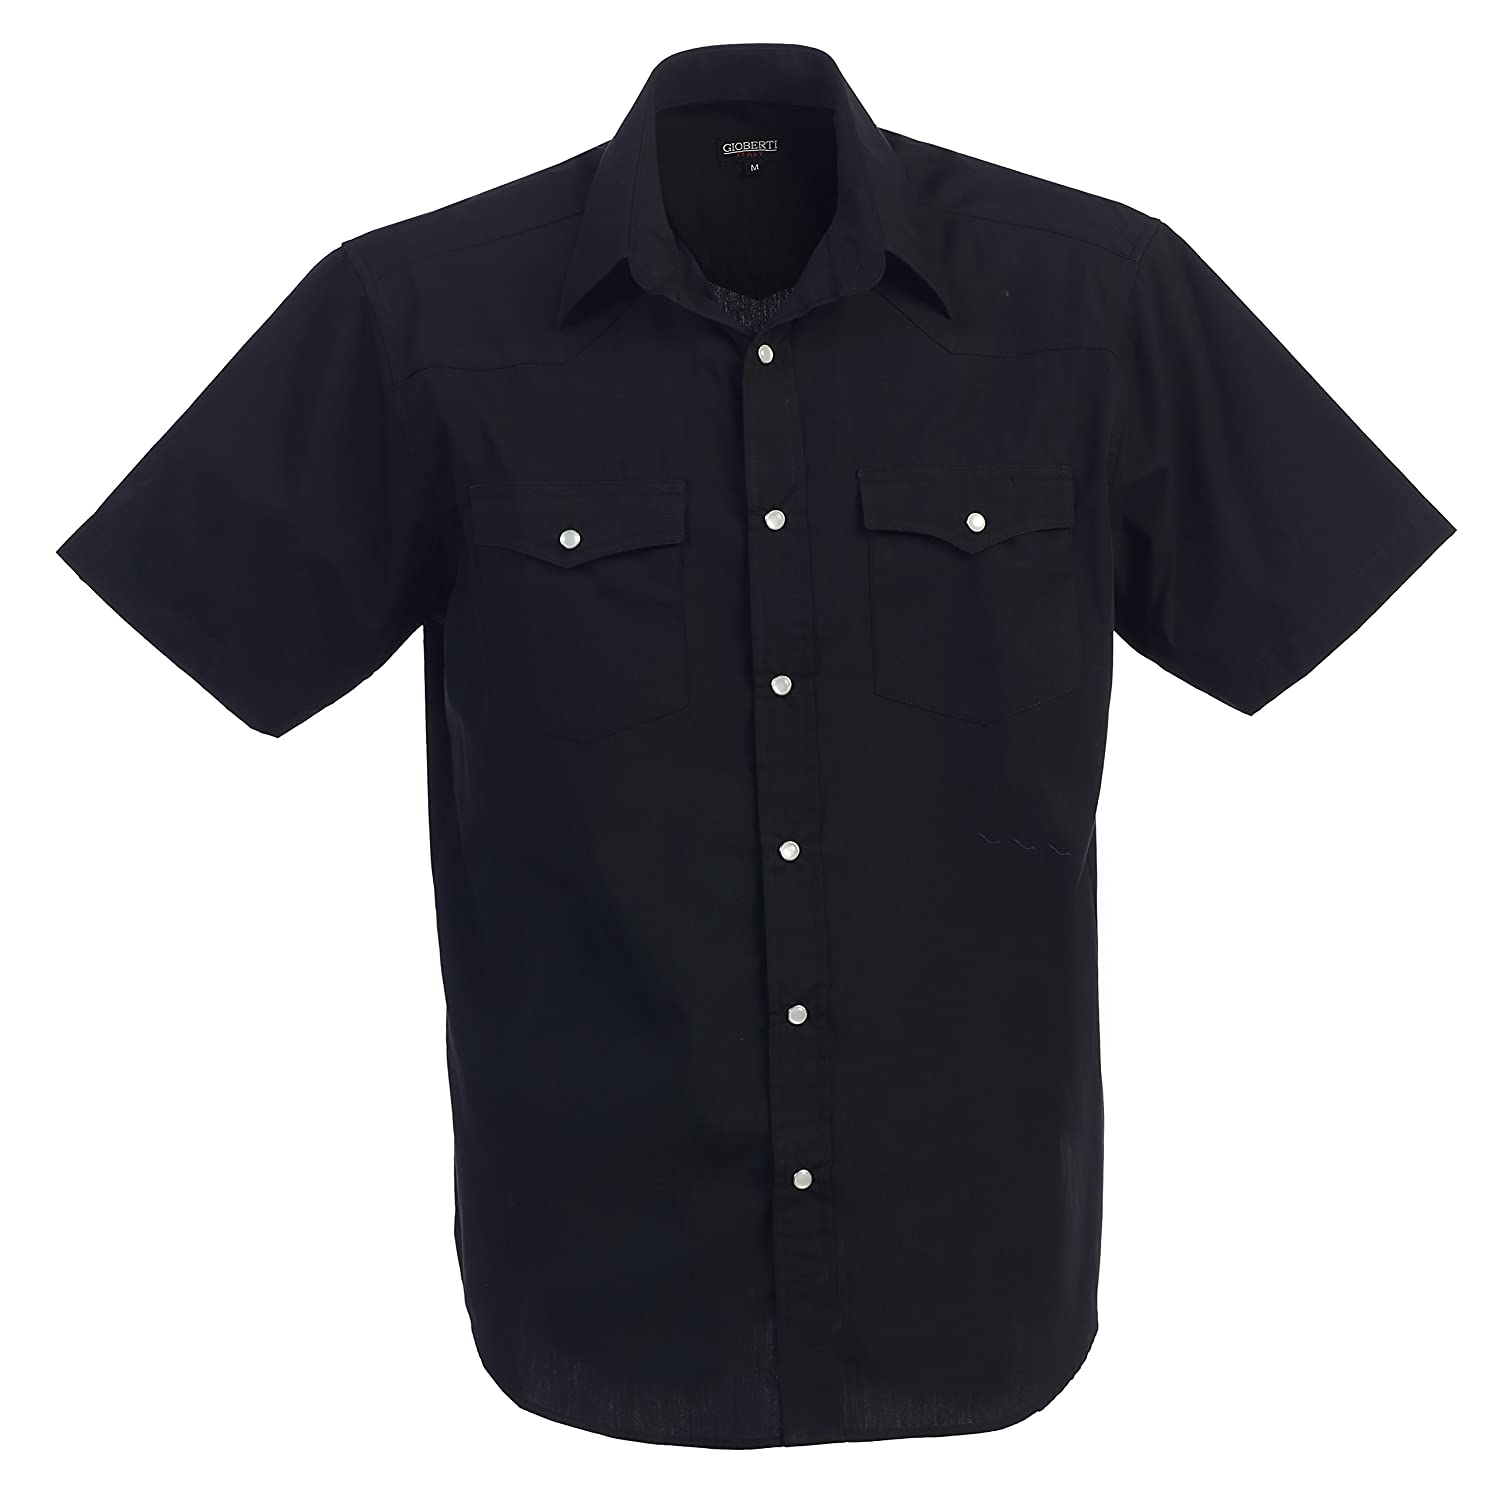 1950s Mens Shirts | Retro Bowling Shirts, Vintage Hawaiian Shirts Gioberti Mens Casual Western Solid Short Sleeve Shirt With Pearl Snaps $22.99 AT vintagedancer.com